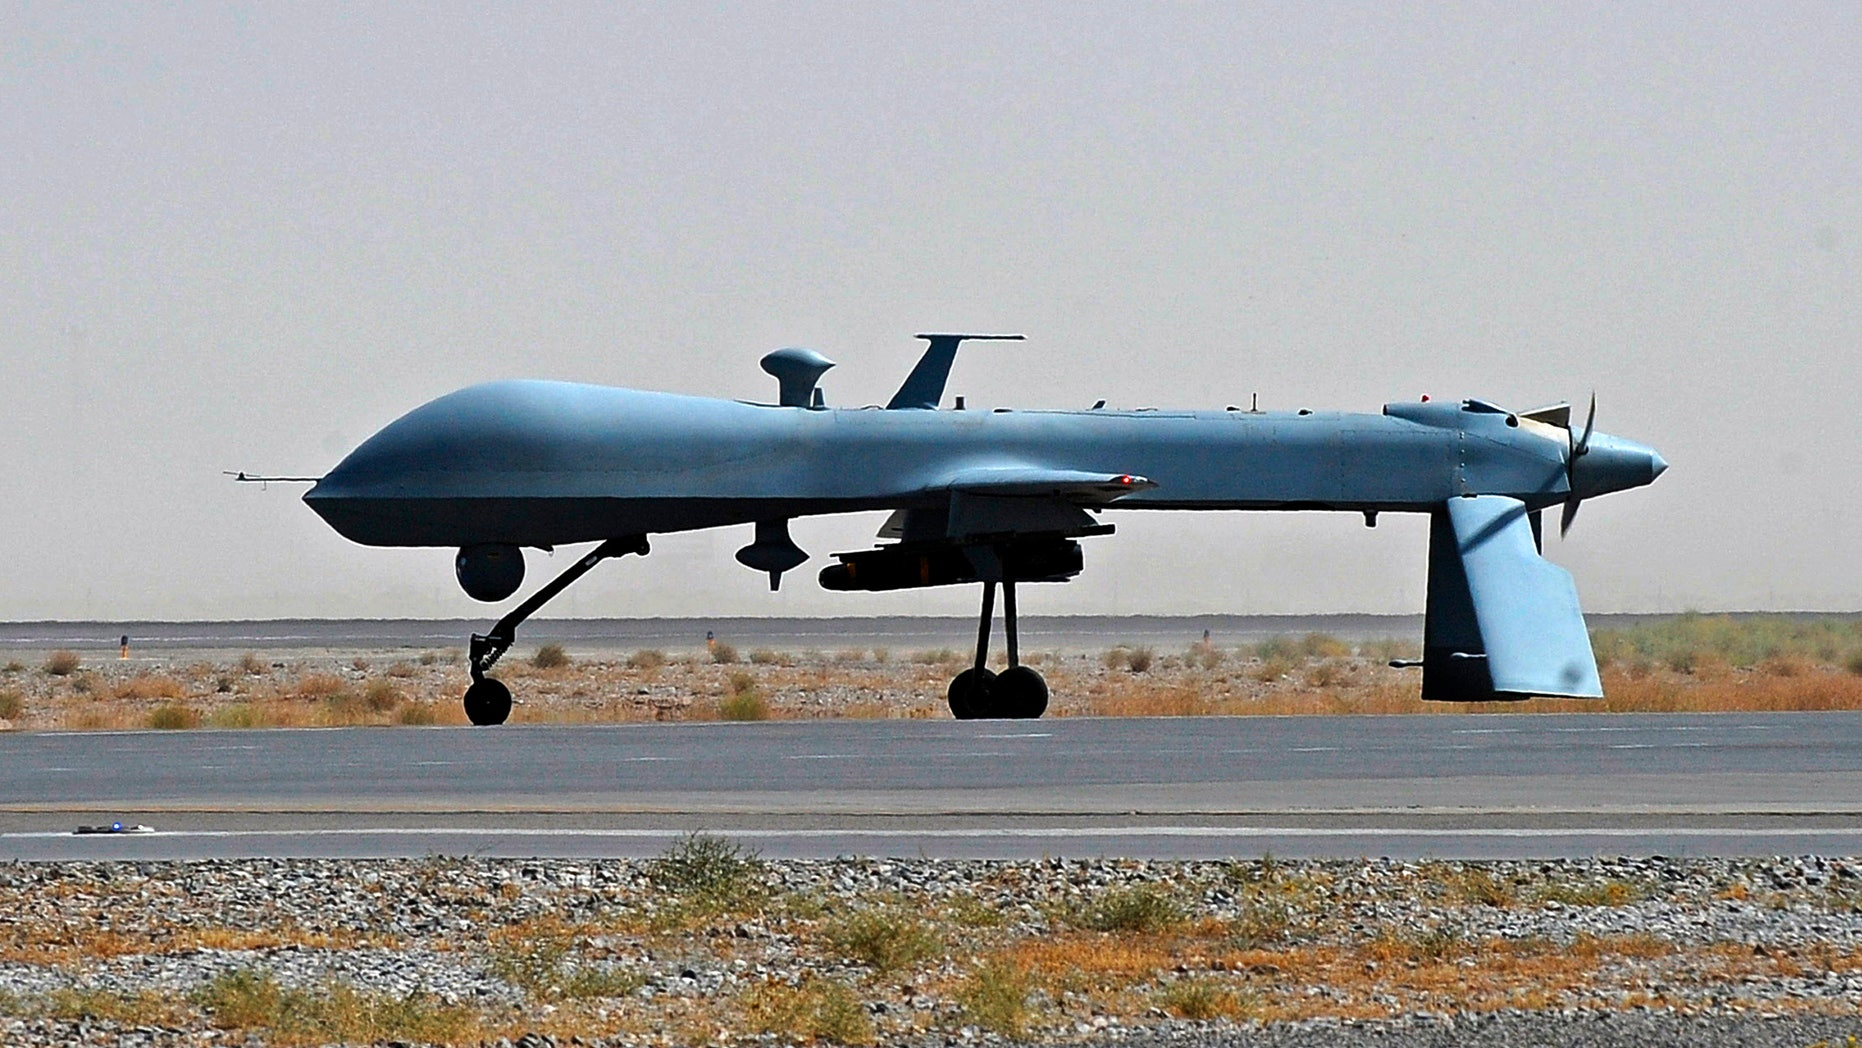 June 13, 2010: U.S. Predator unmanned drone armed with a missile stands on the tarmac of Kandahar military airport in Afghanistan.